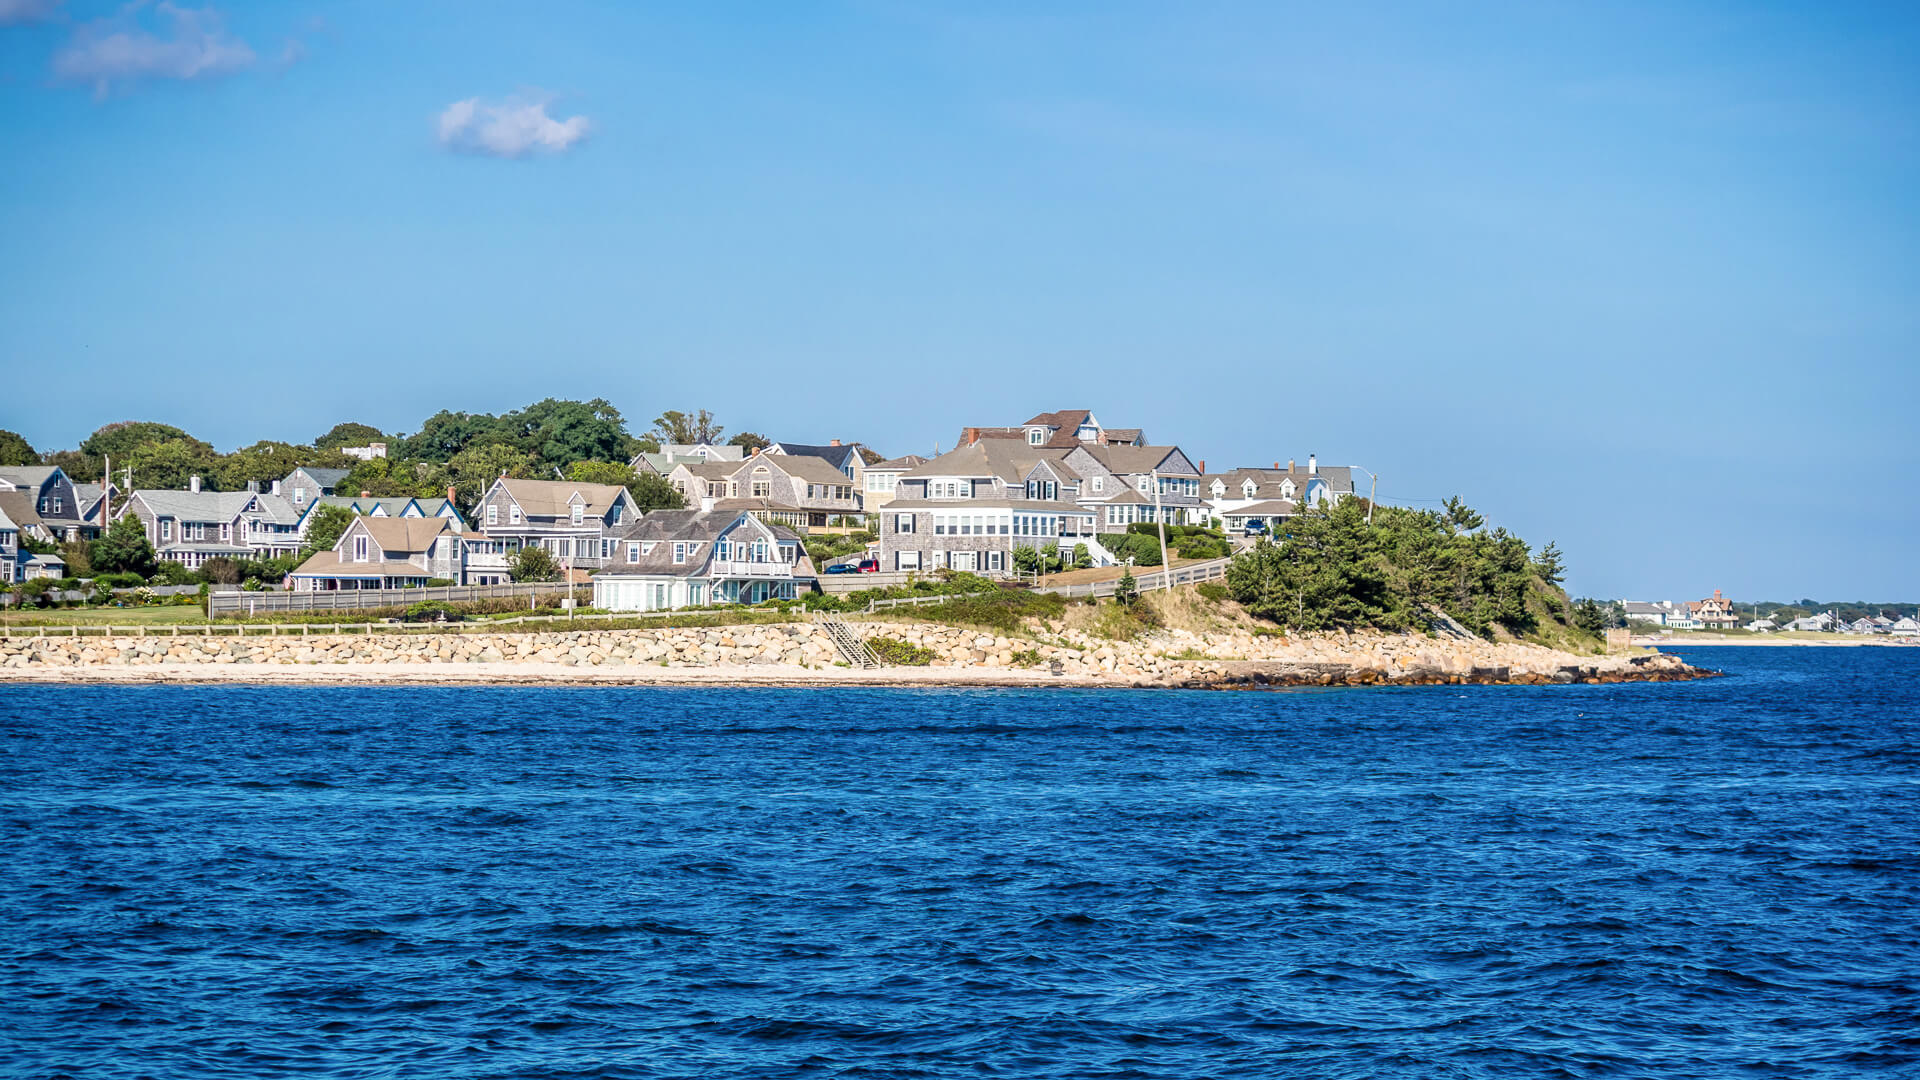 Epic shot of The Vineyard Island from our boat in Martha's Vineyard.